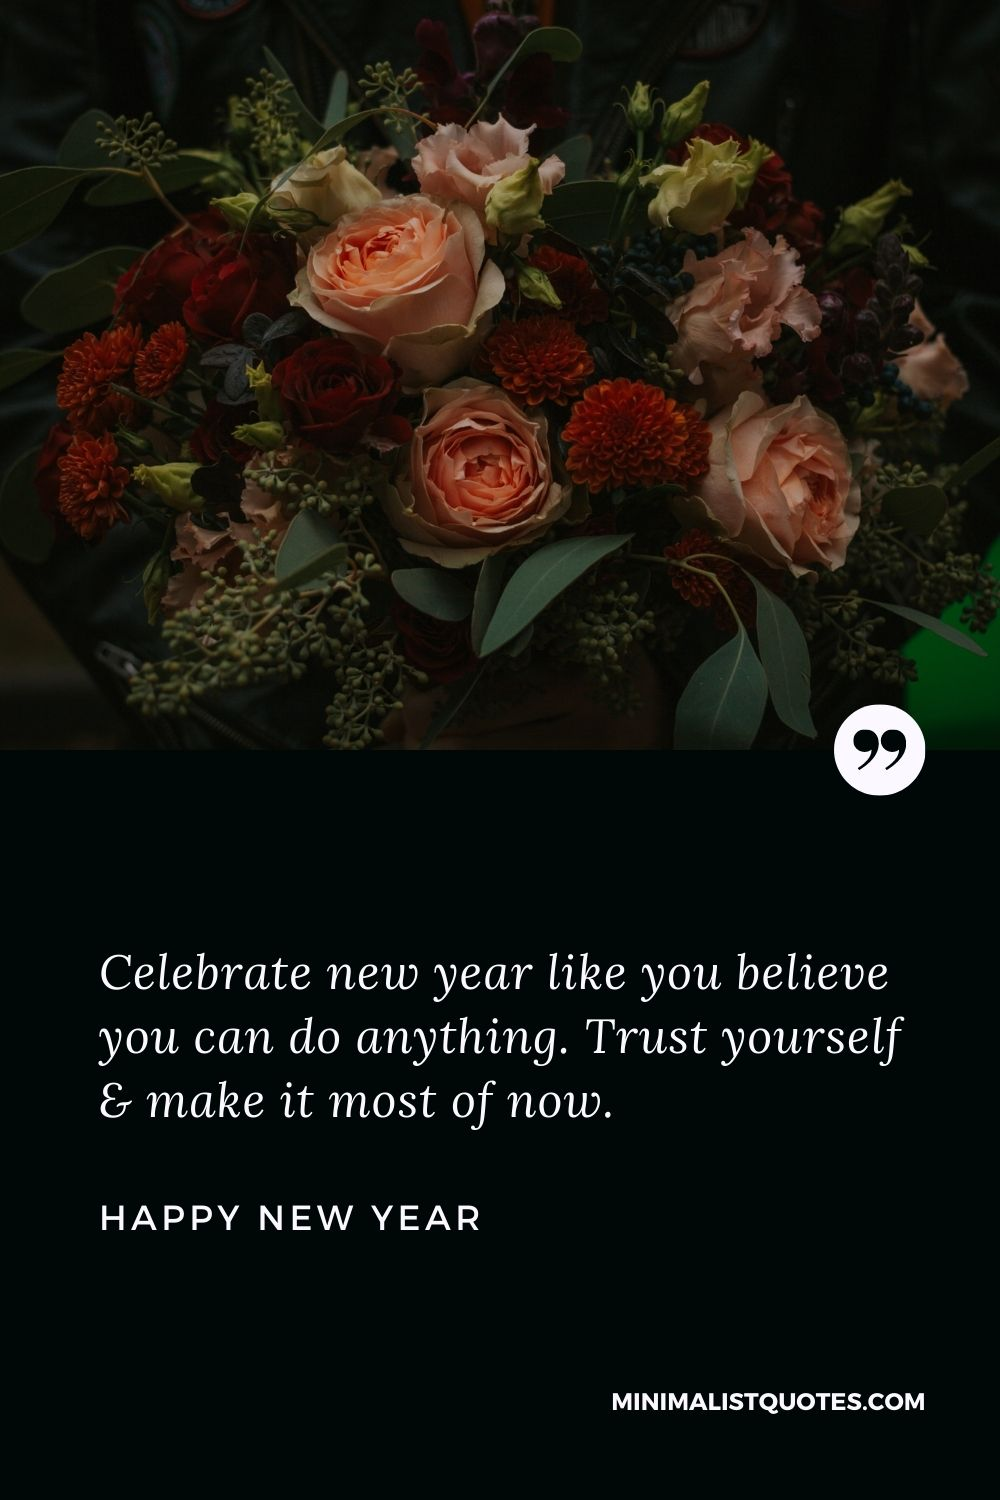 New Year Wish - Celebrate new year like you believe you can do anything. Trust yourself & make it most of now.